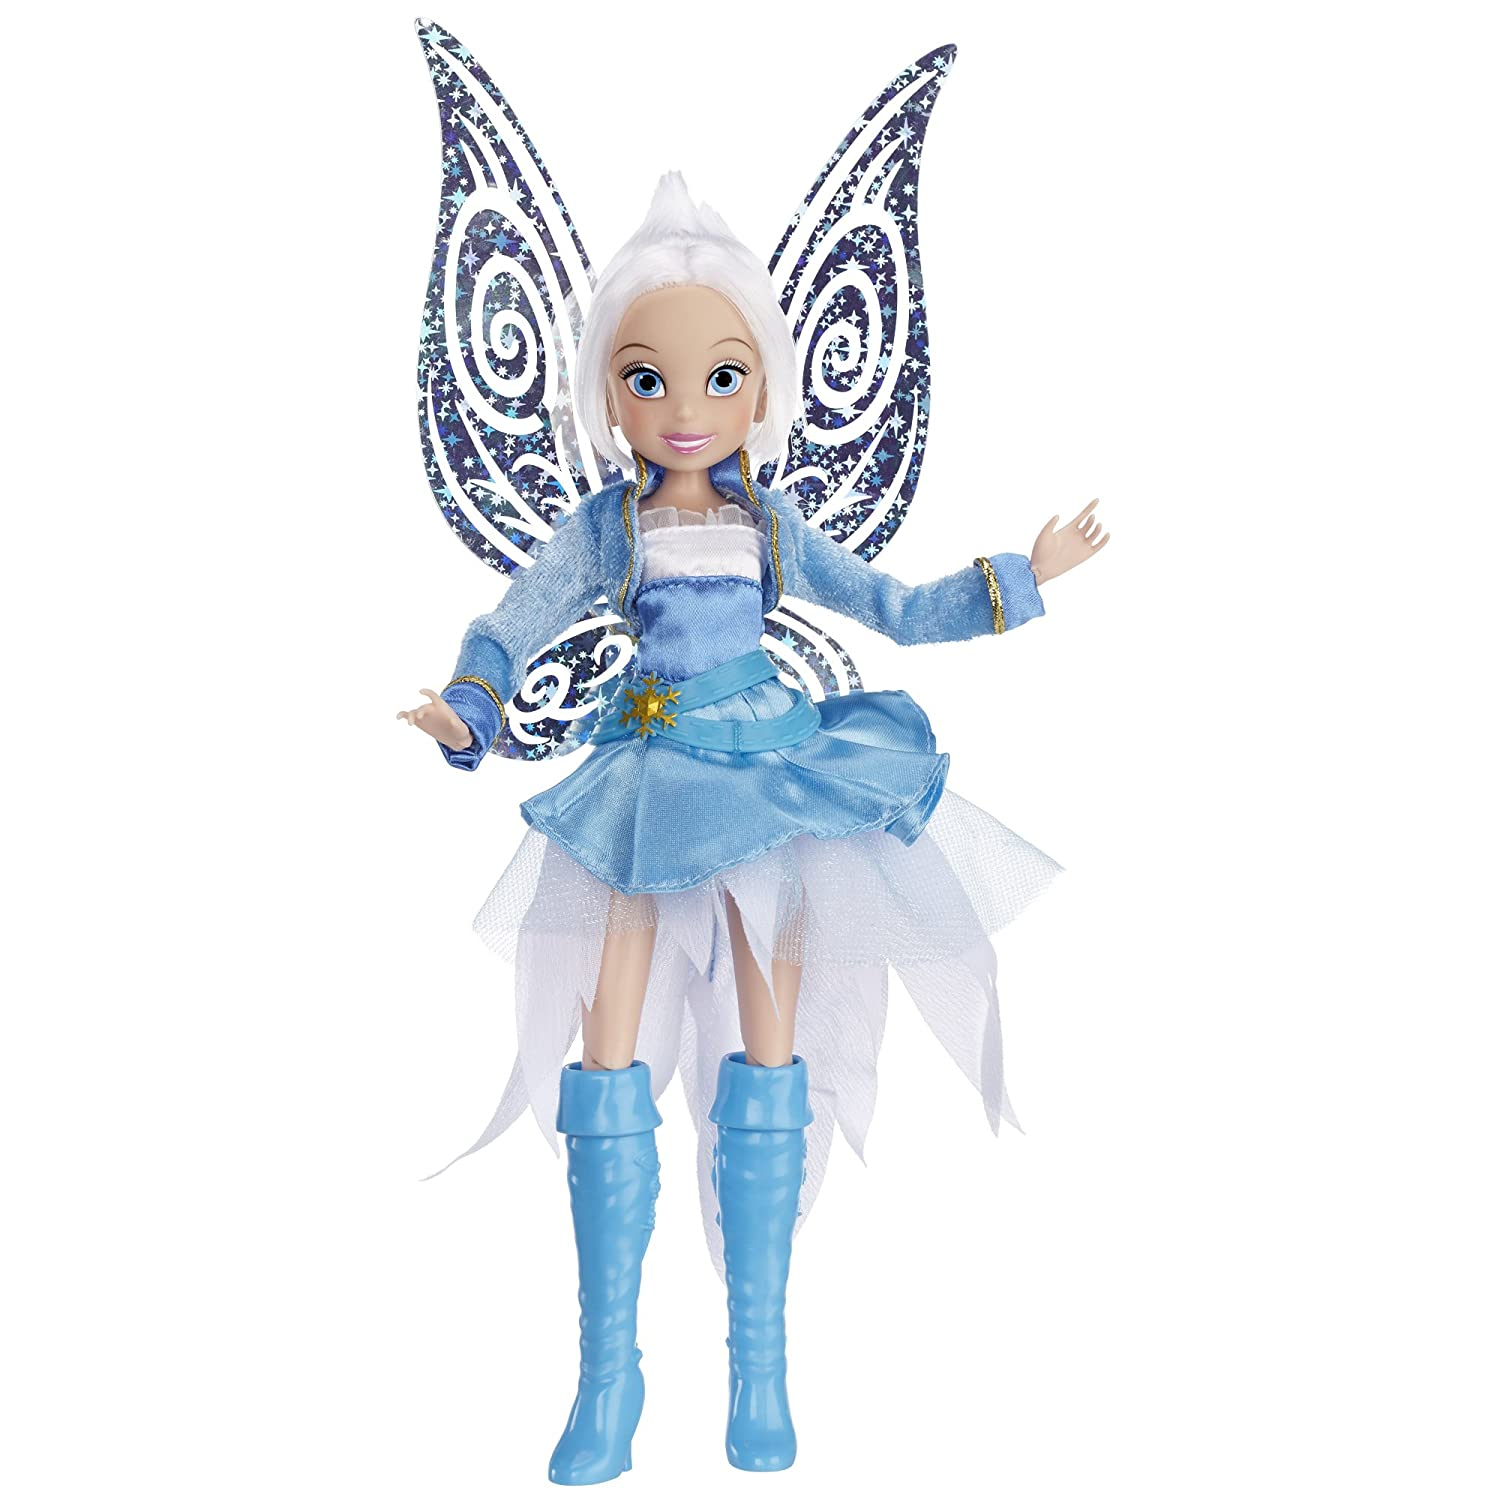 Disney Fairies Periwinkle Wave 9 Deluxe Fashion Doll